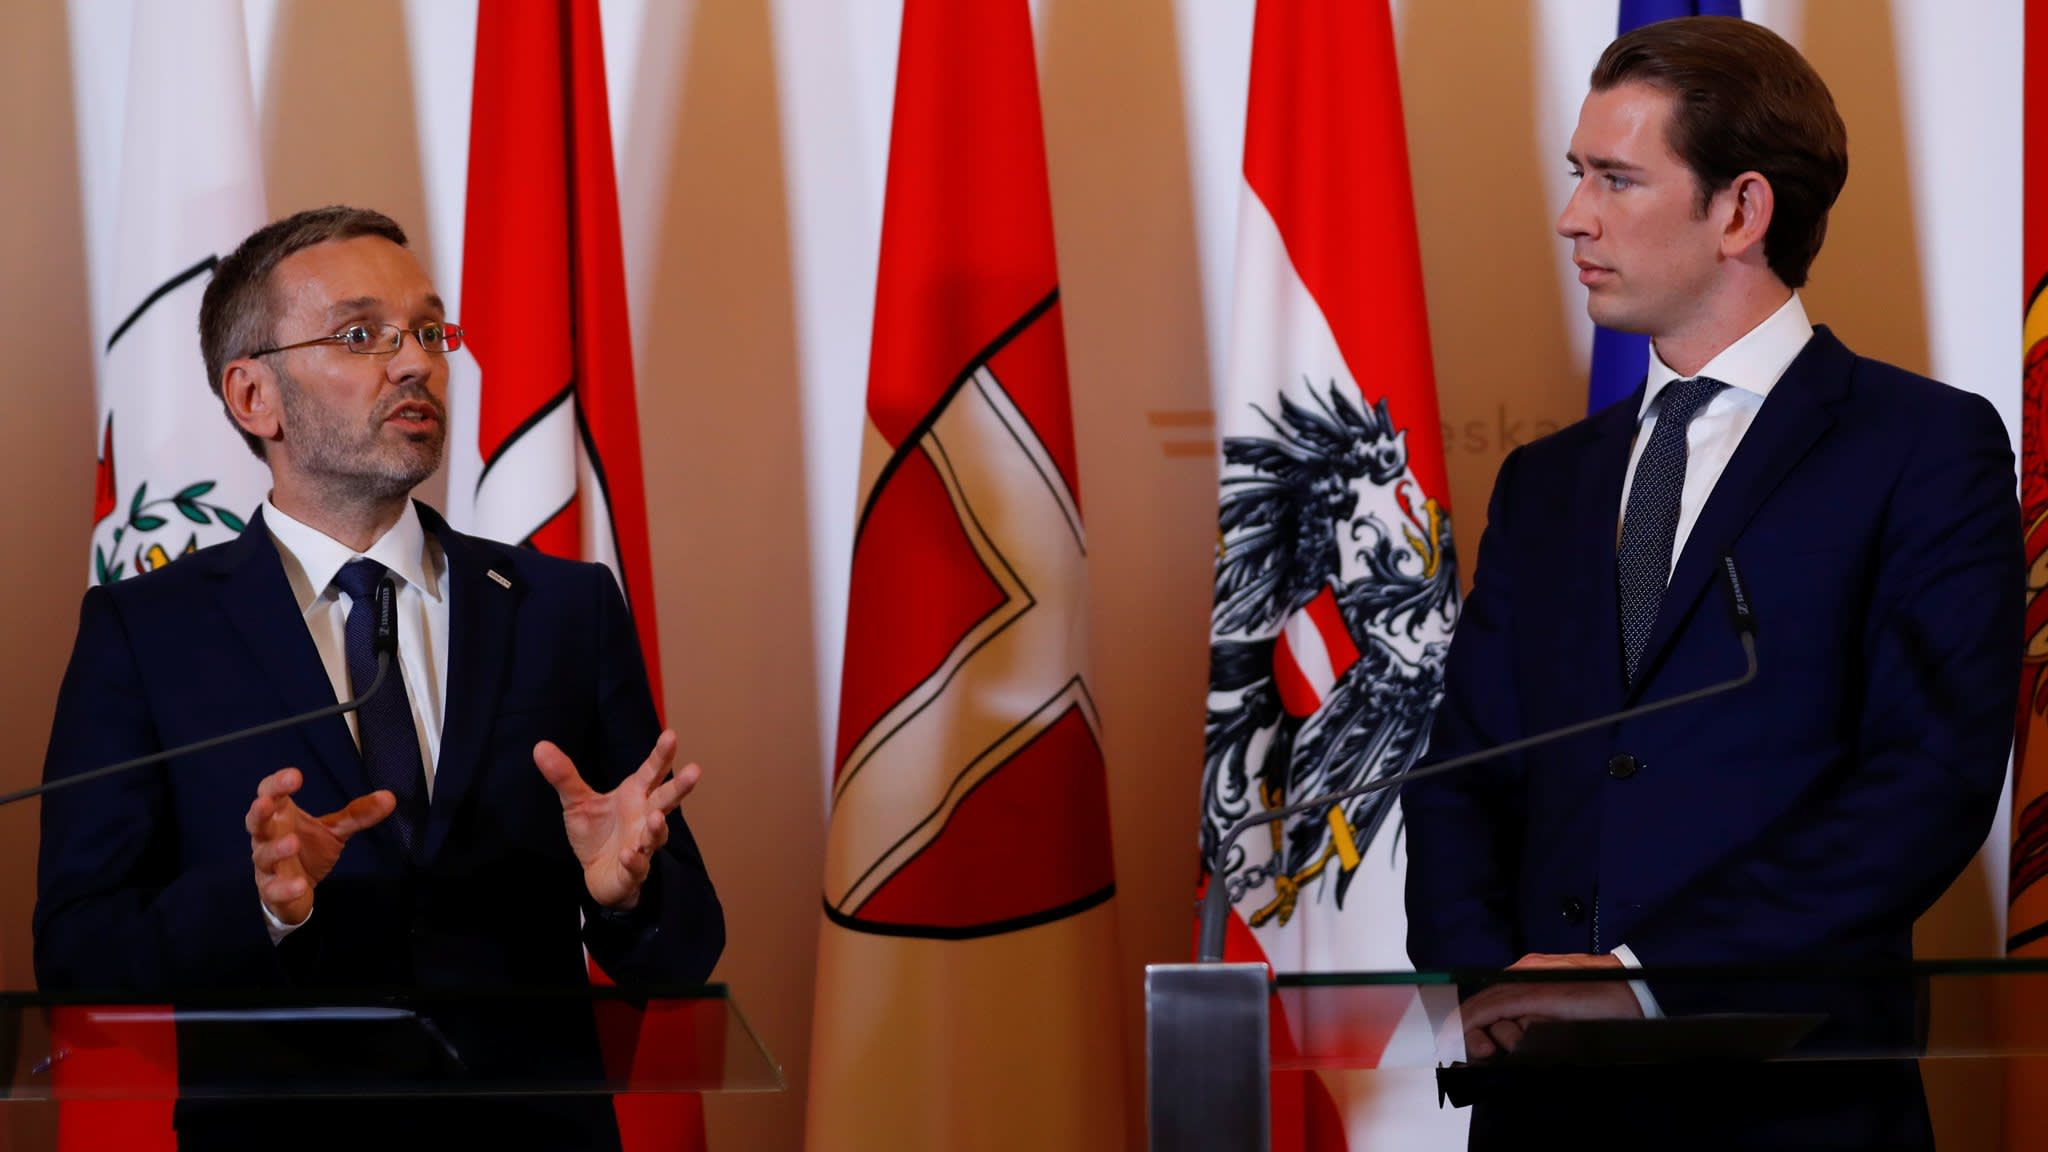 Austria's far-right minister tests coalition amid press-curb fears